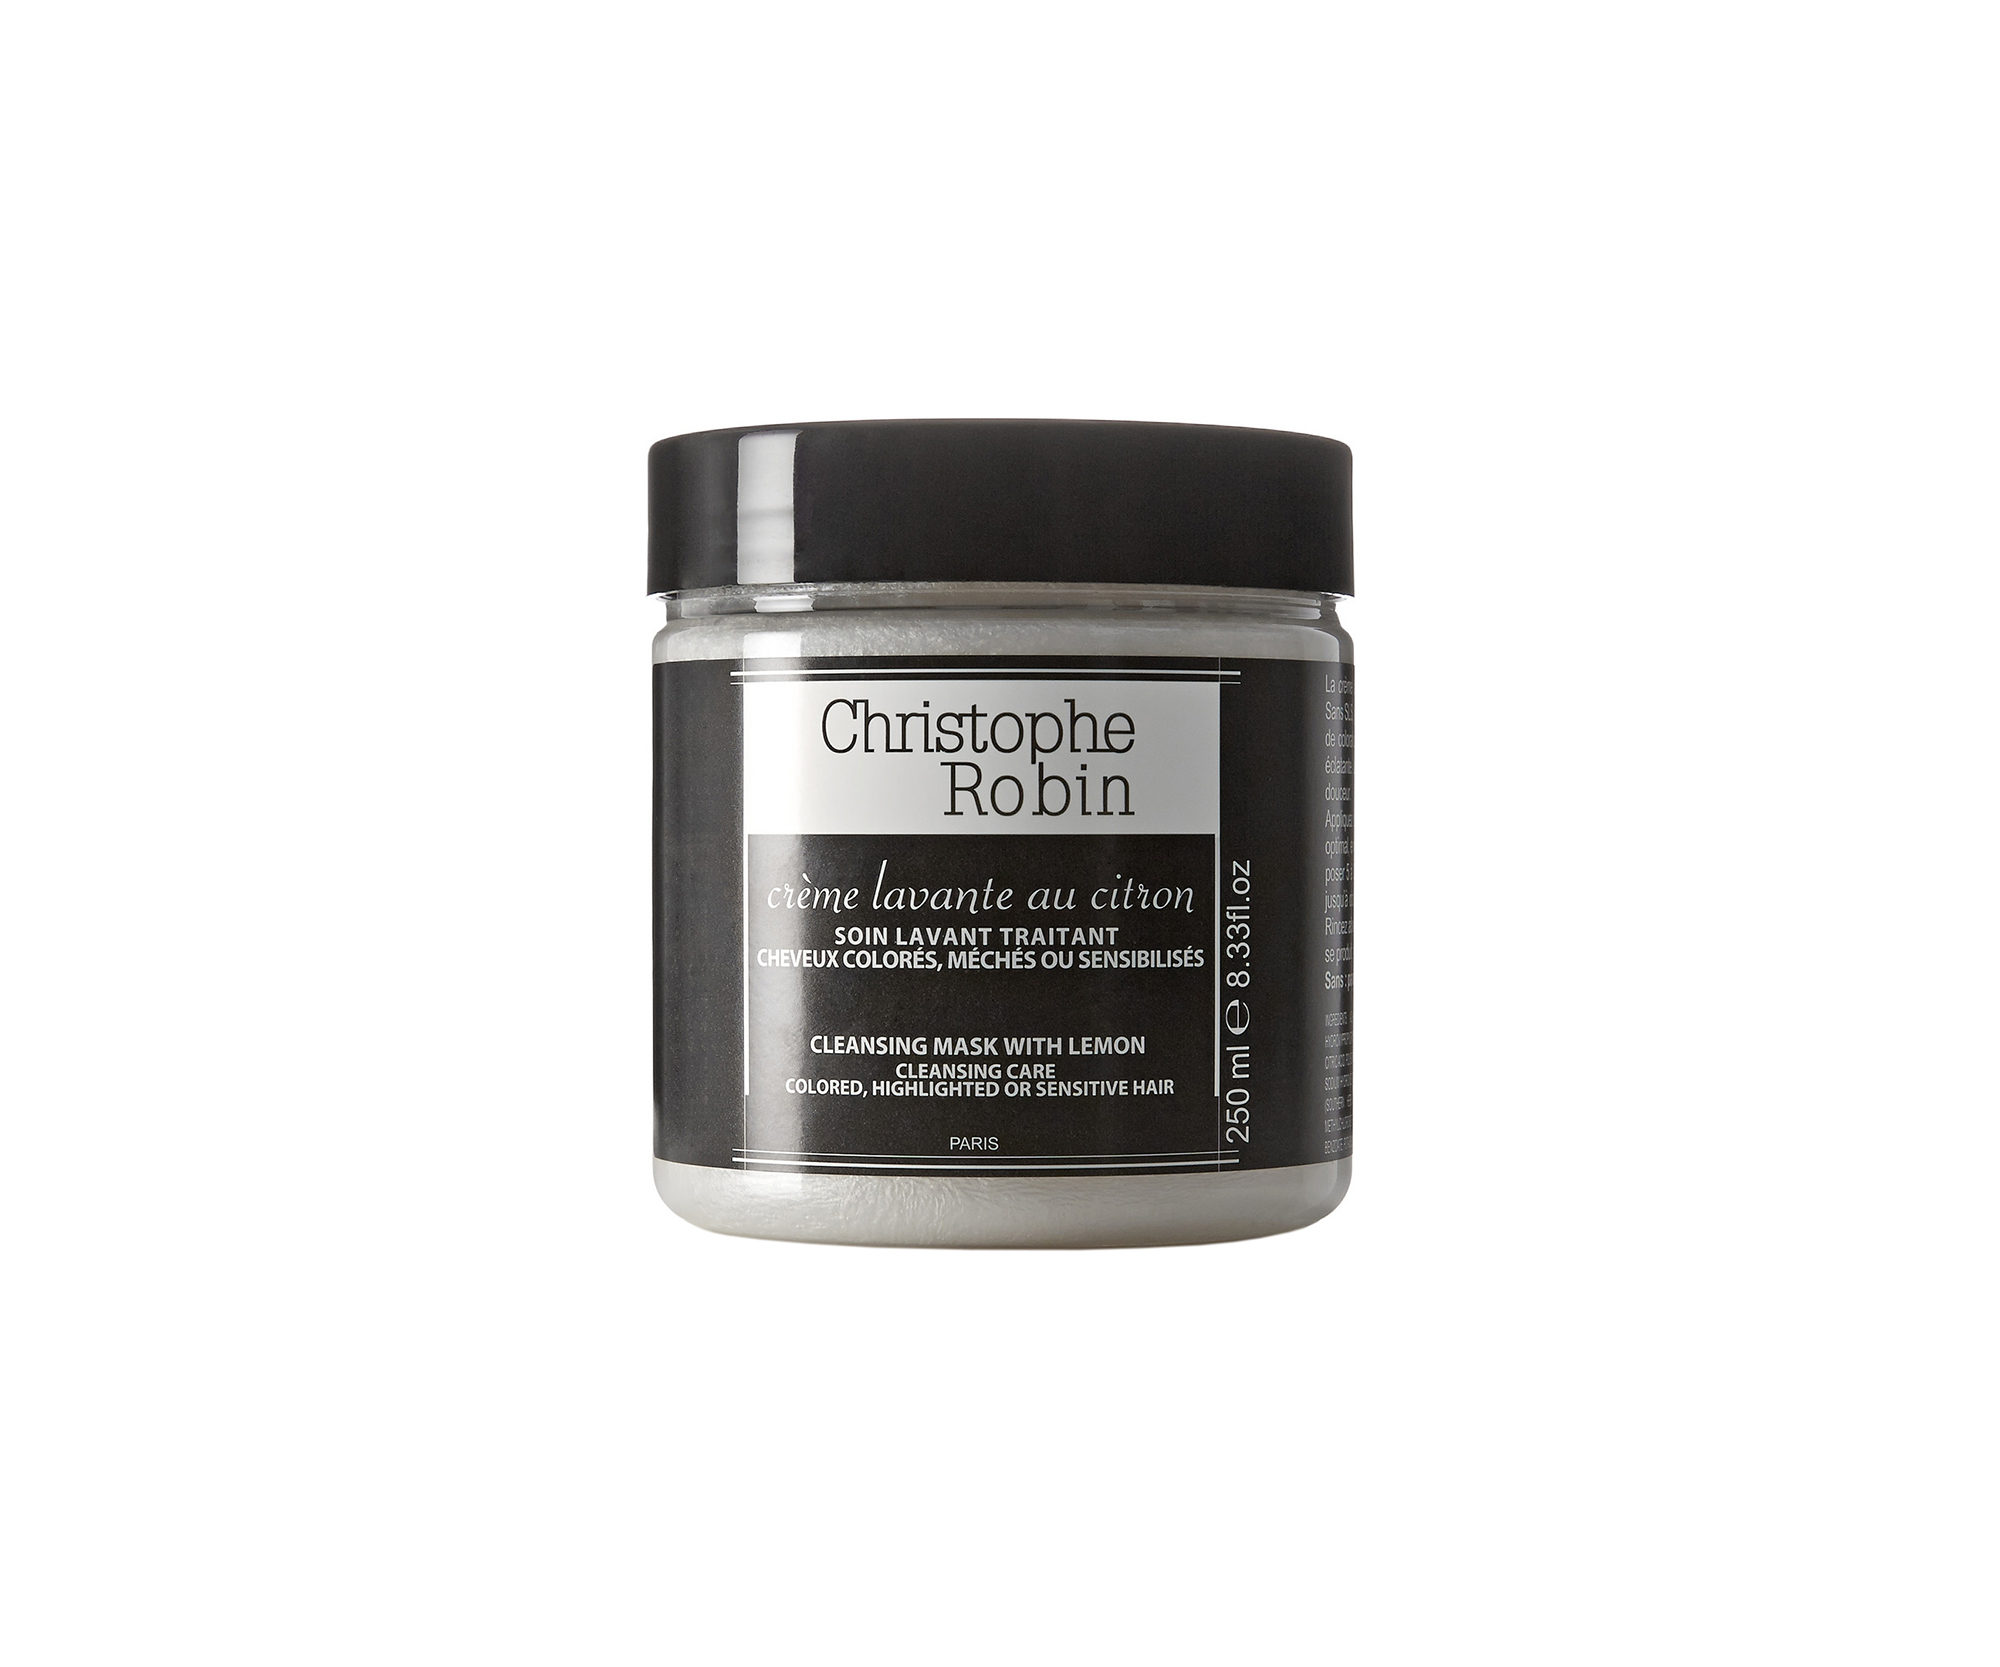 Christophe Robin Cleansing Mask with Lemon